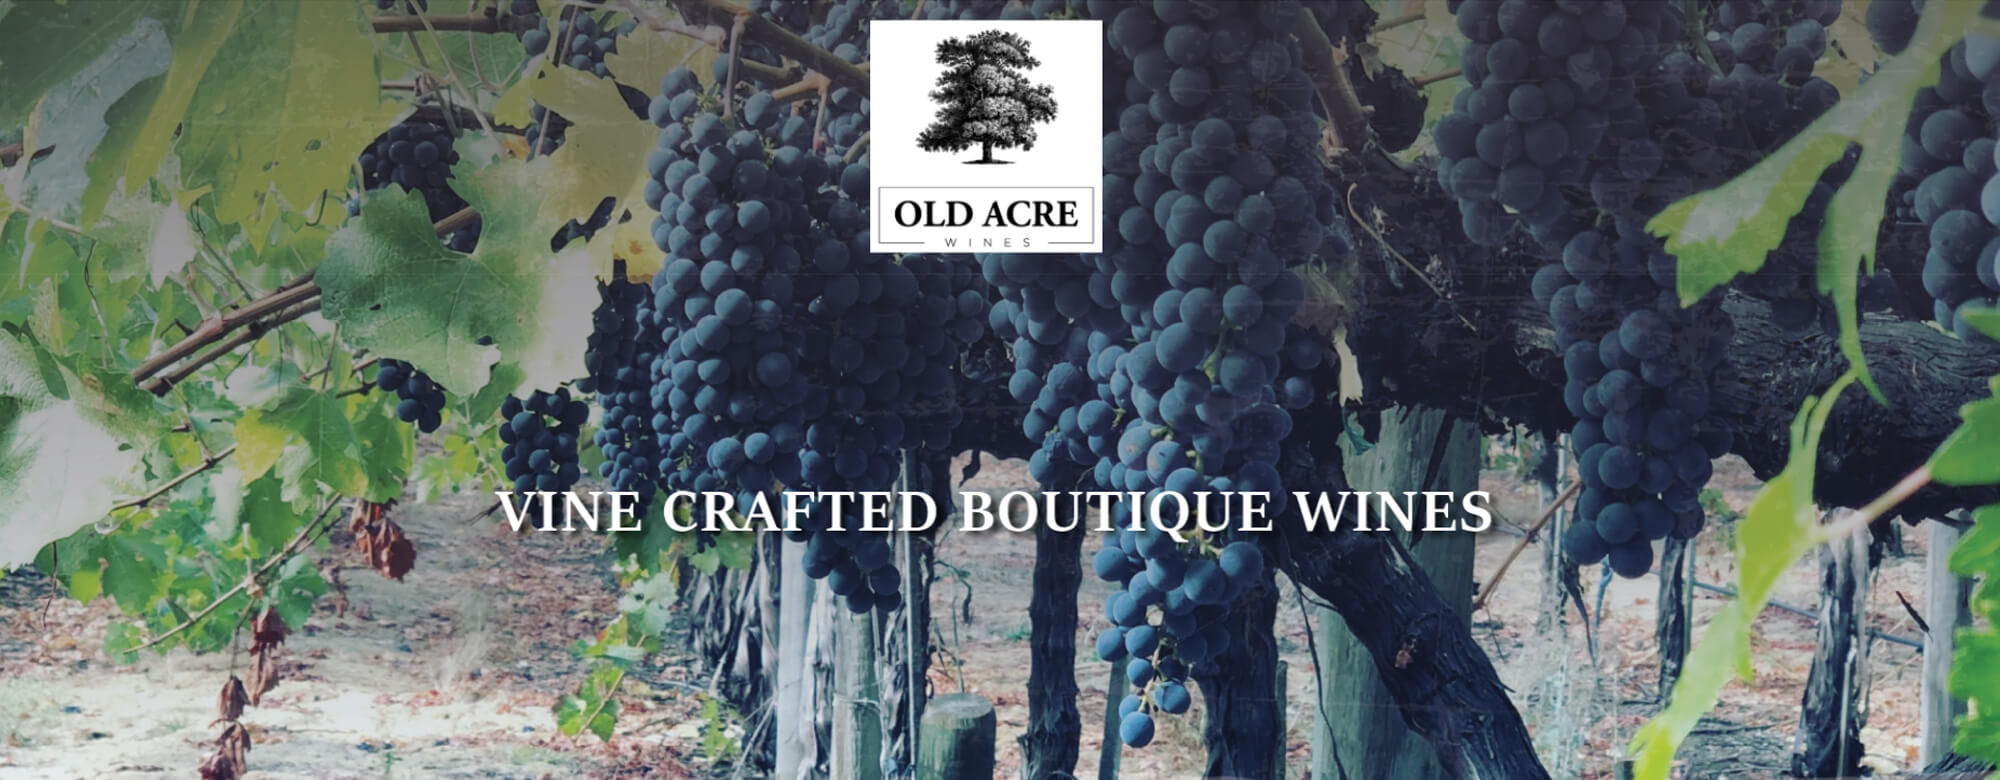 OLDACRE VINE CRAFTED BOUTIQUE WINES